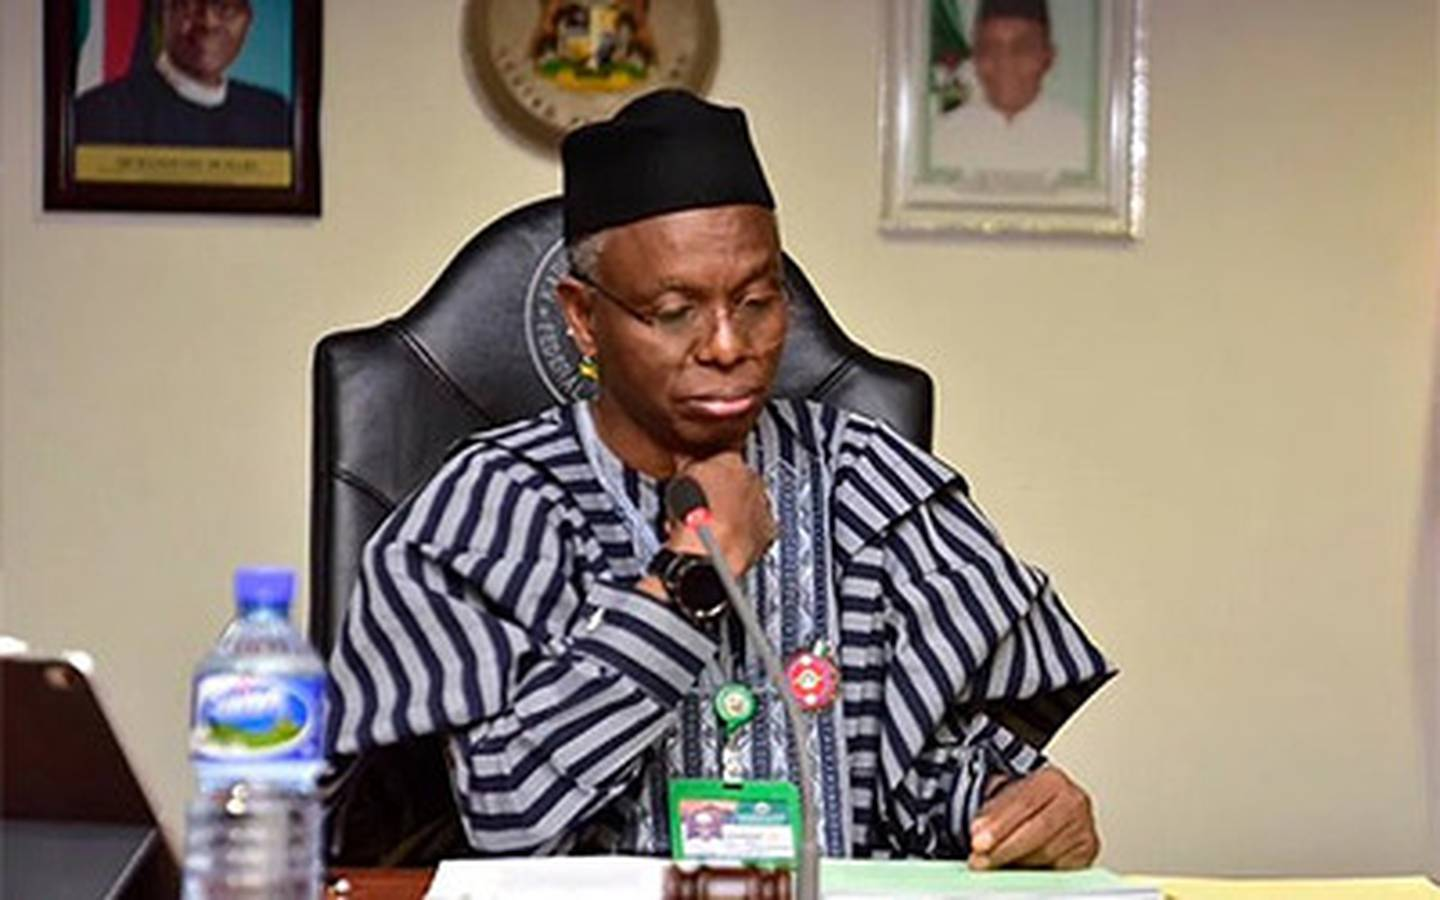 The governor of Nigeria's Kaduna state Nasir Ahmad el-Rufai has signed a law saying men convicted...